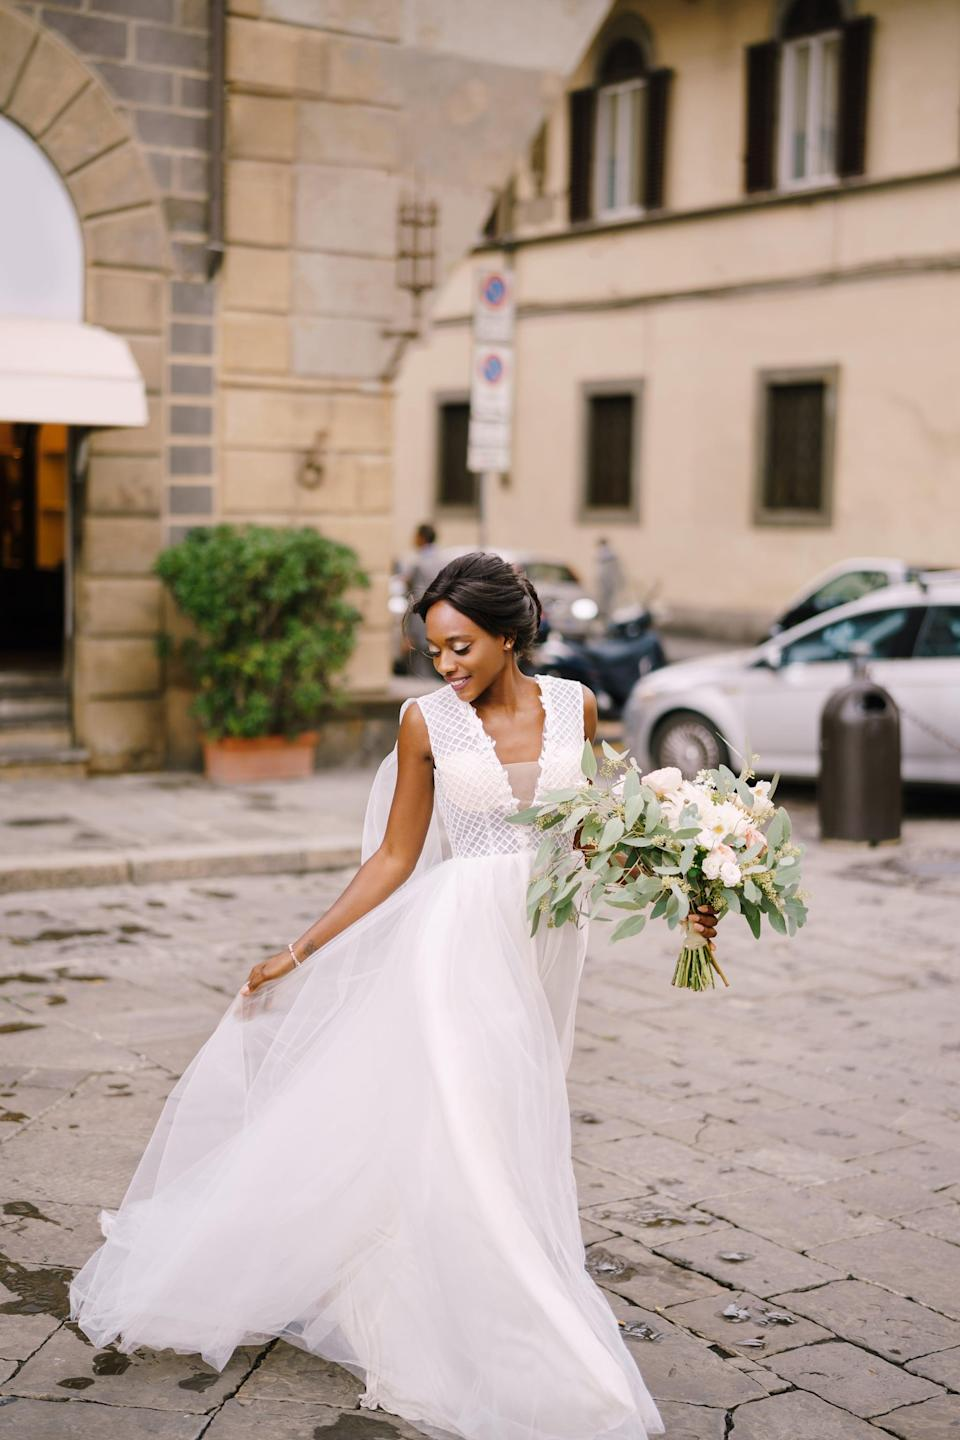 """<p>Professional models know just how to move to bring life to a picture. Give your <a class=""""link rapid-noclick-resp"""" href=""""https://www.popsugar.co.uk/tag/Wedding"""" rel=""""nofollow noopener"""" target=""""_blank"""" data-ylk=""""slk:wedding"""">wedding</a> day some of that same energy by swishing or moving your gown as you walk.</p>"""